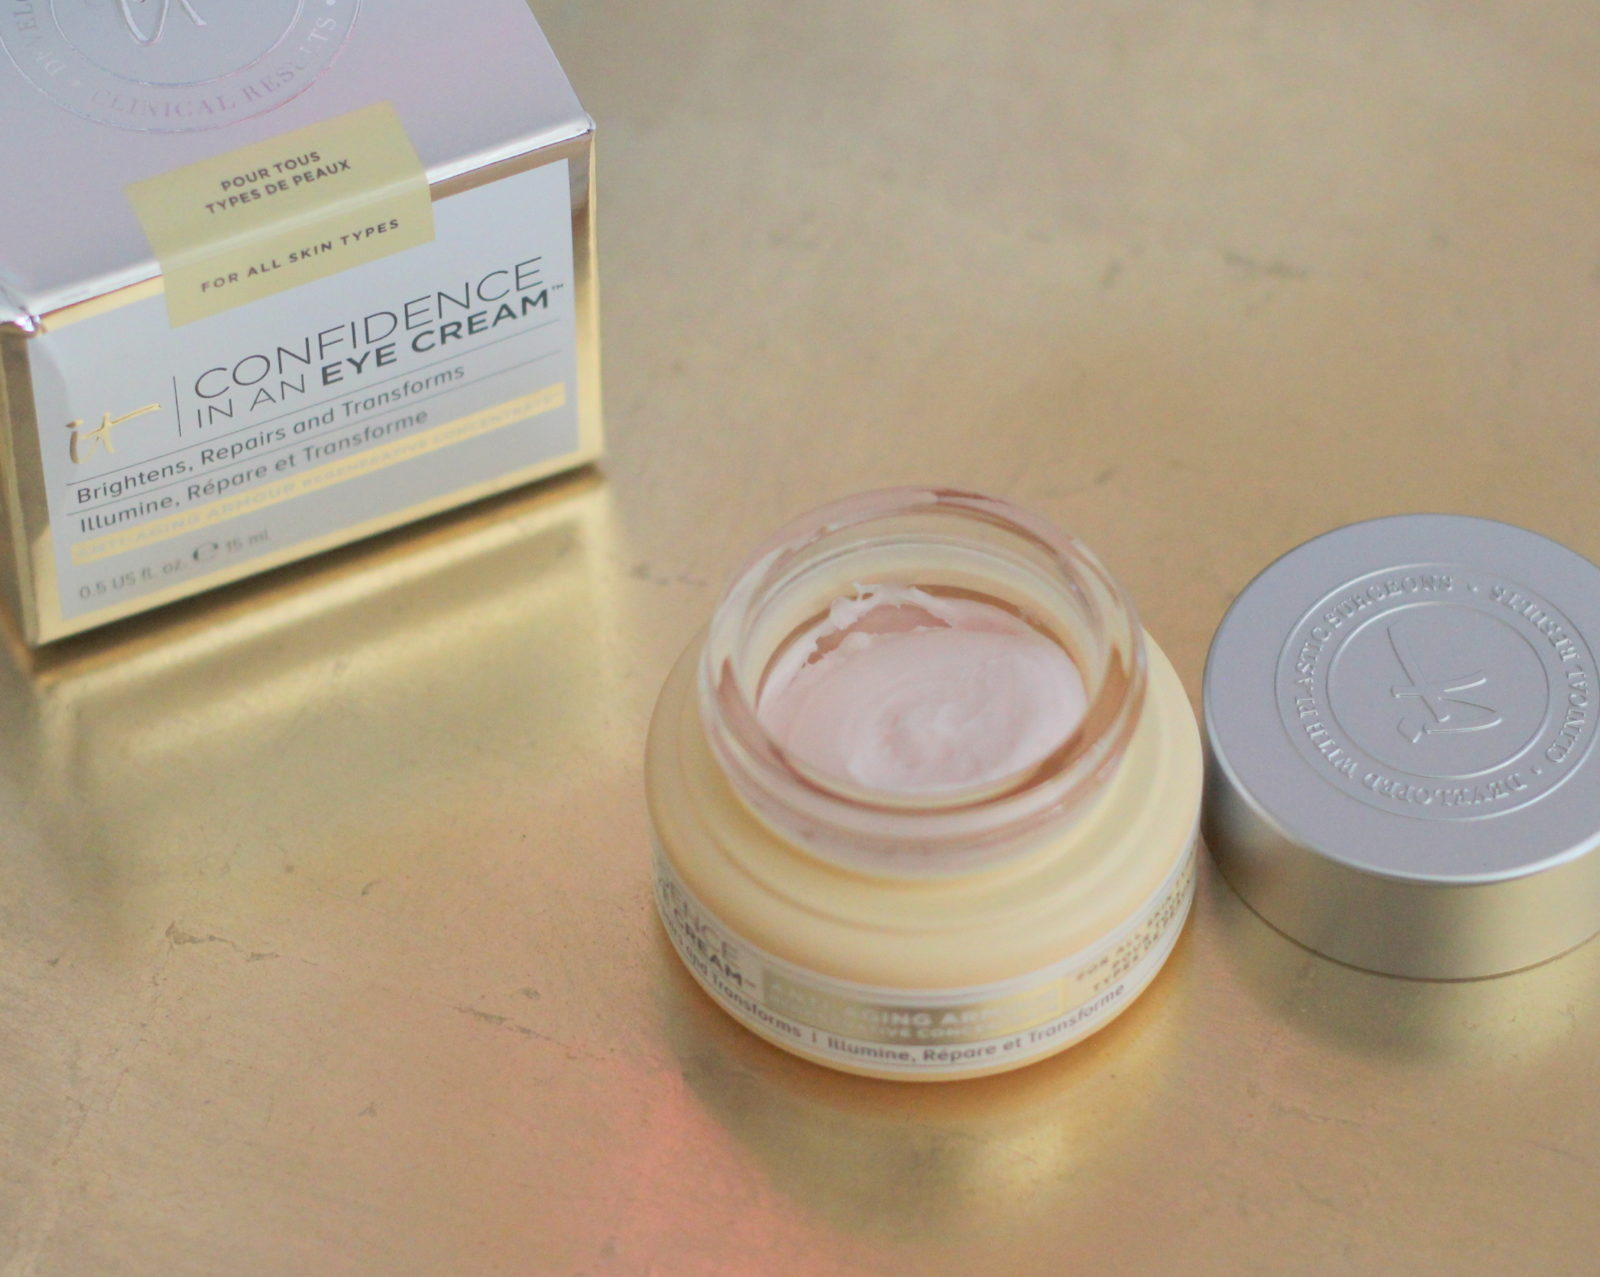 IT Cosmetics Confidence Eye Cream